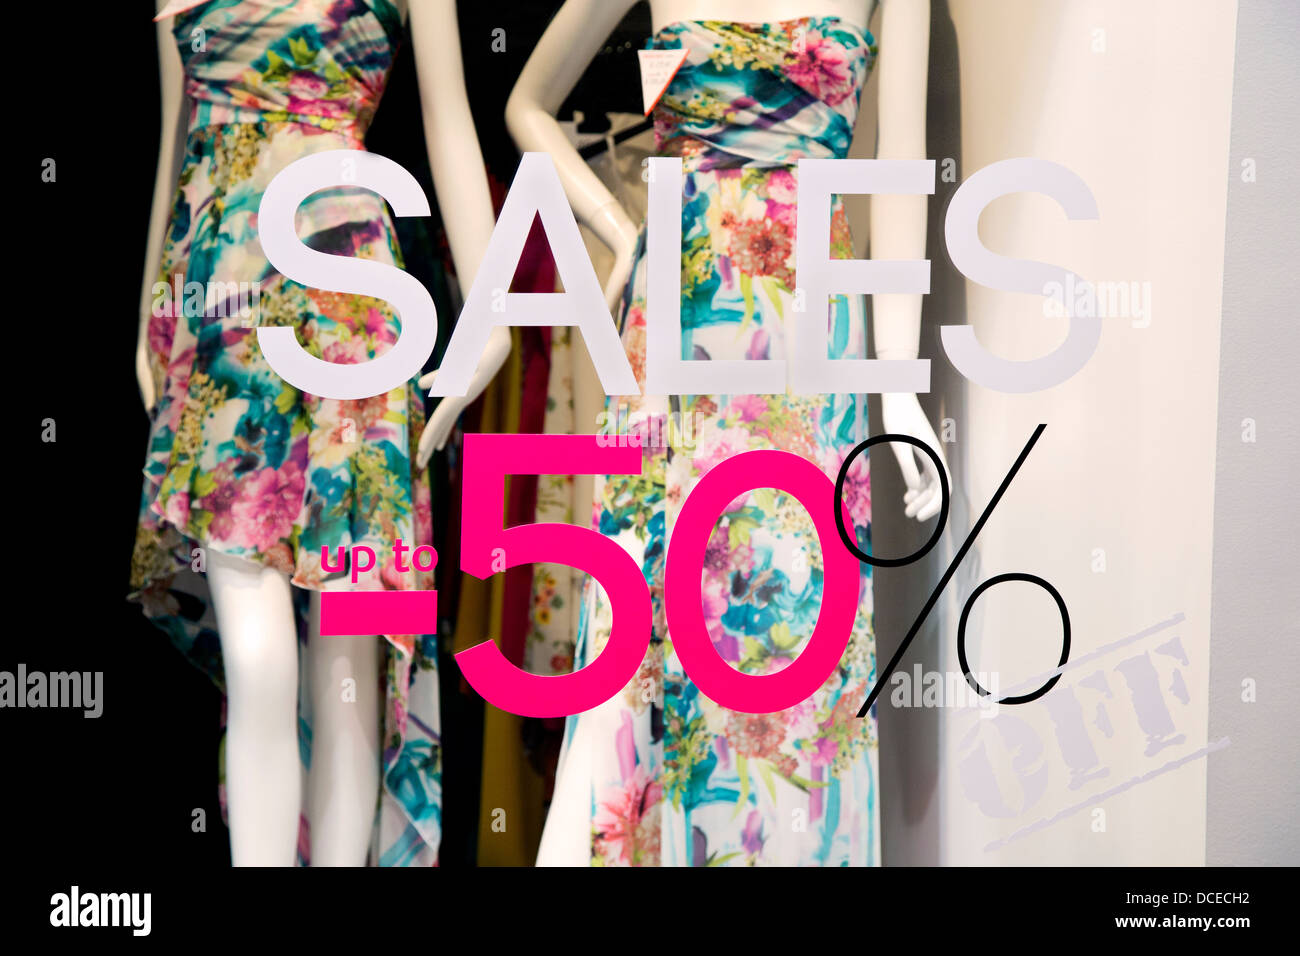 Fashion clothing on sale in shop - Stock Image